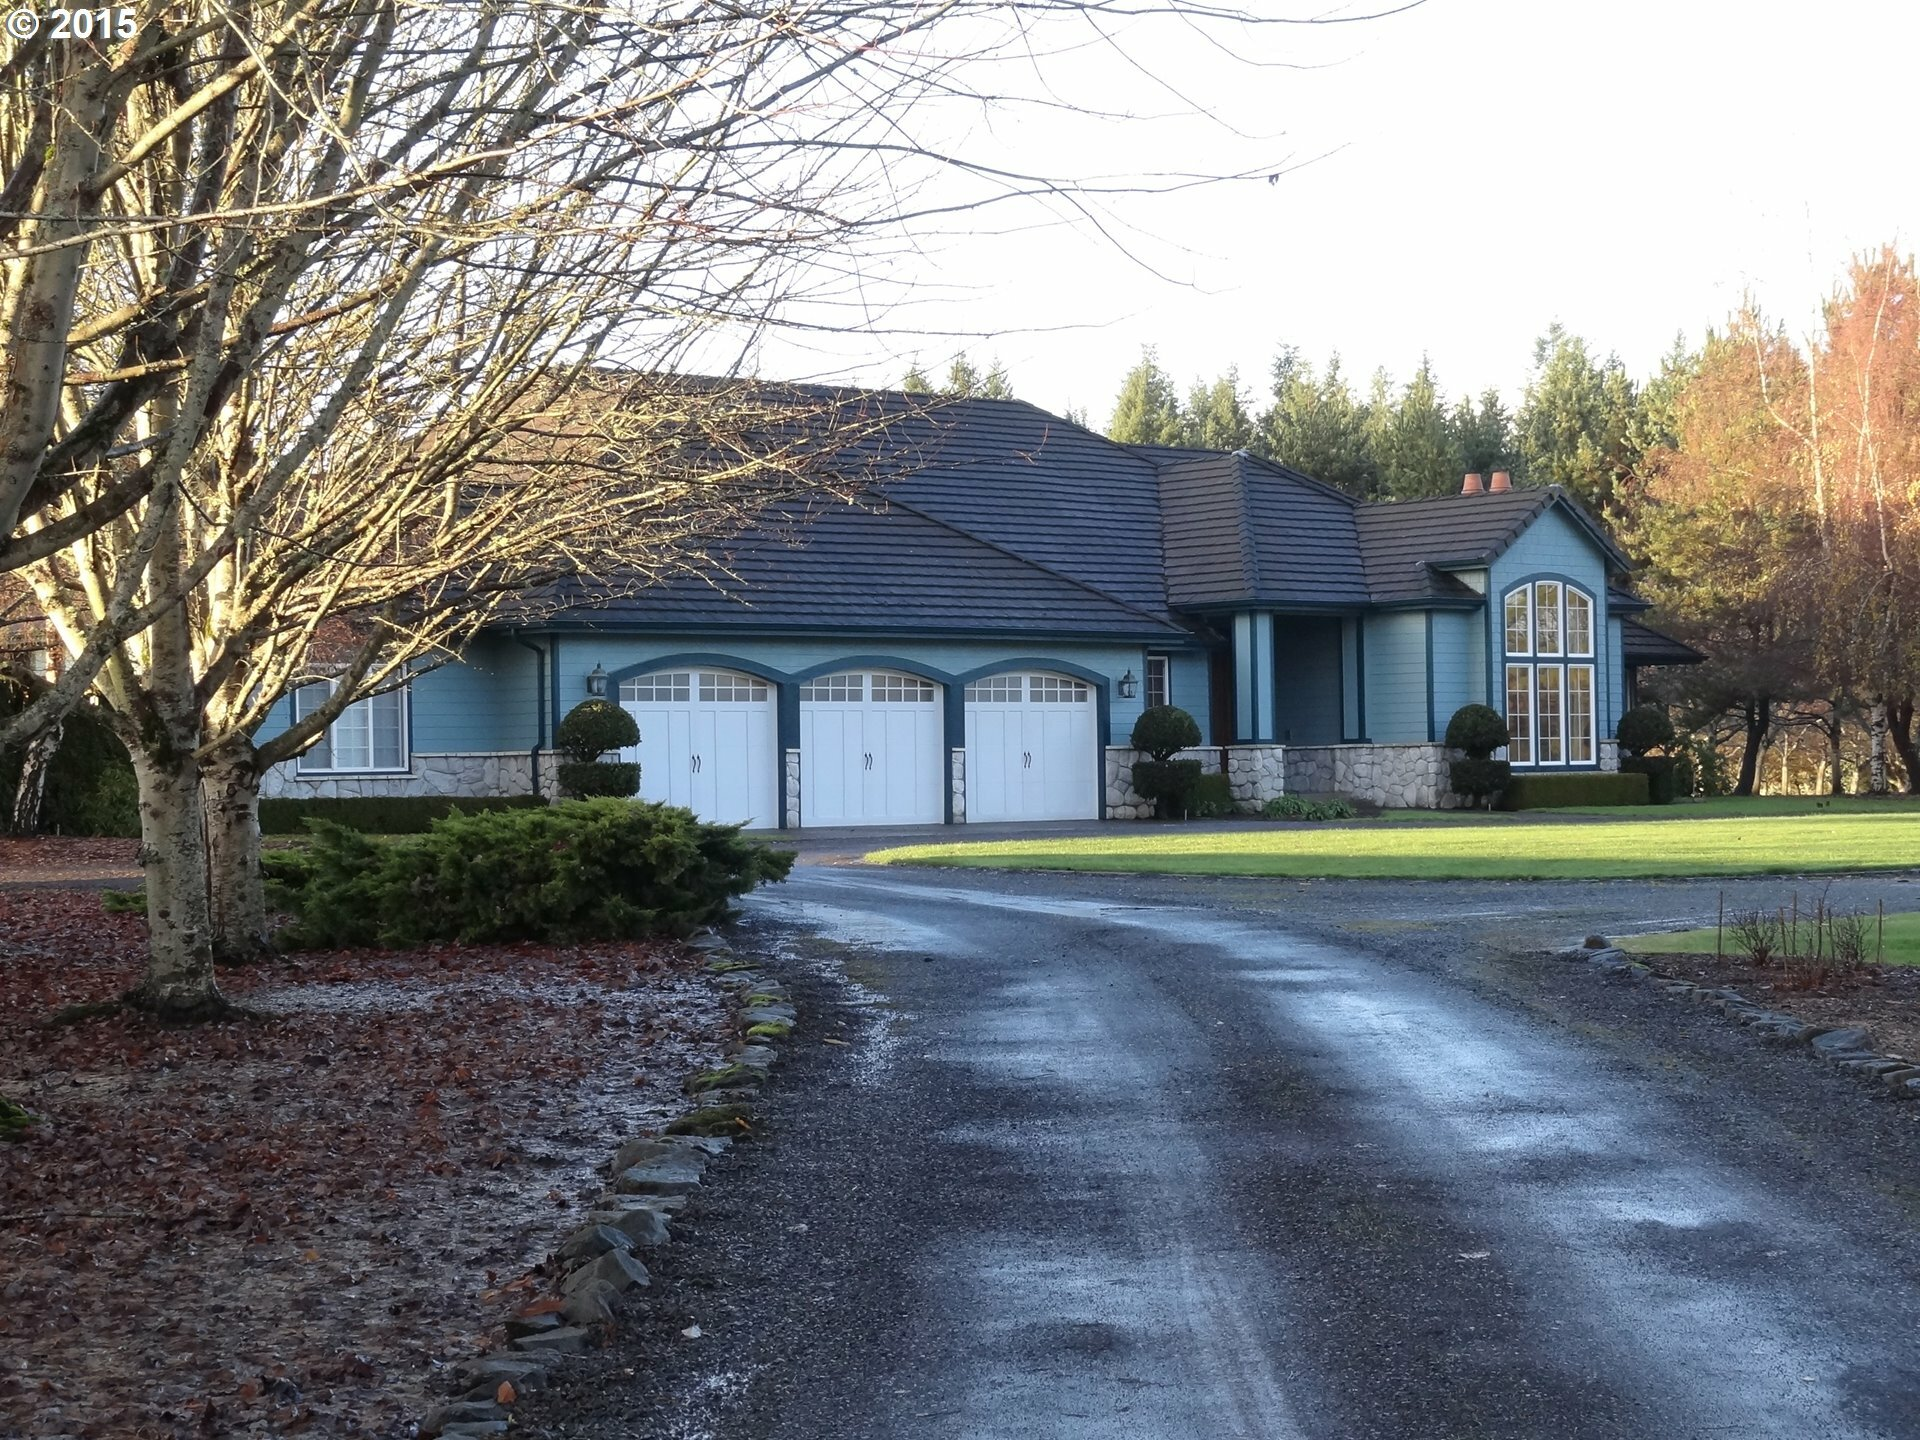 29112 Nw 41st Ave, Ridgefield, WA - USA (photo 1)